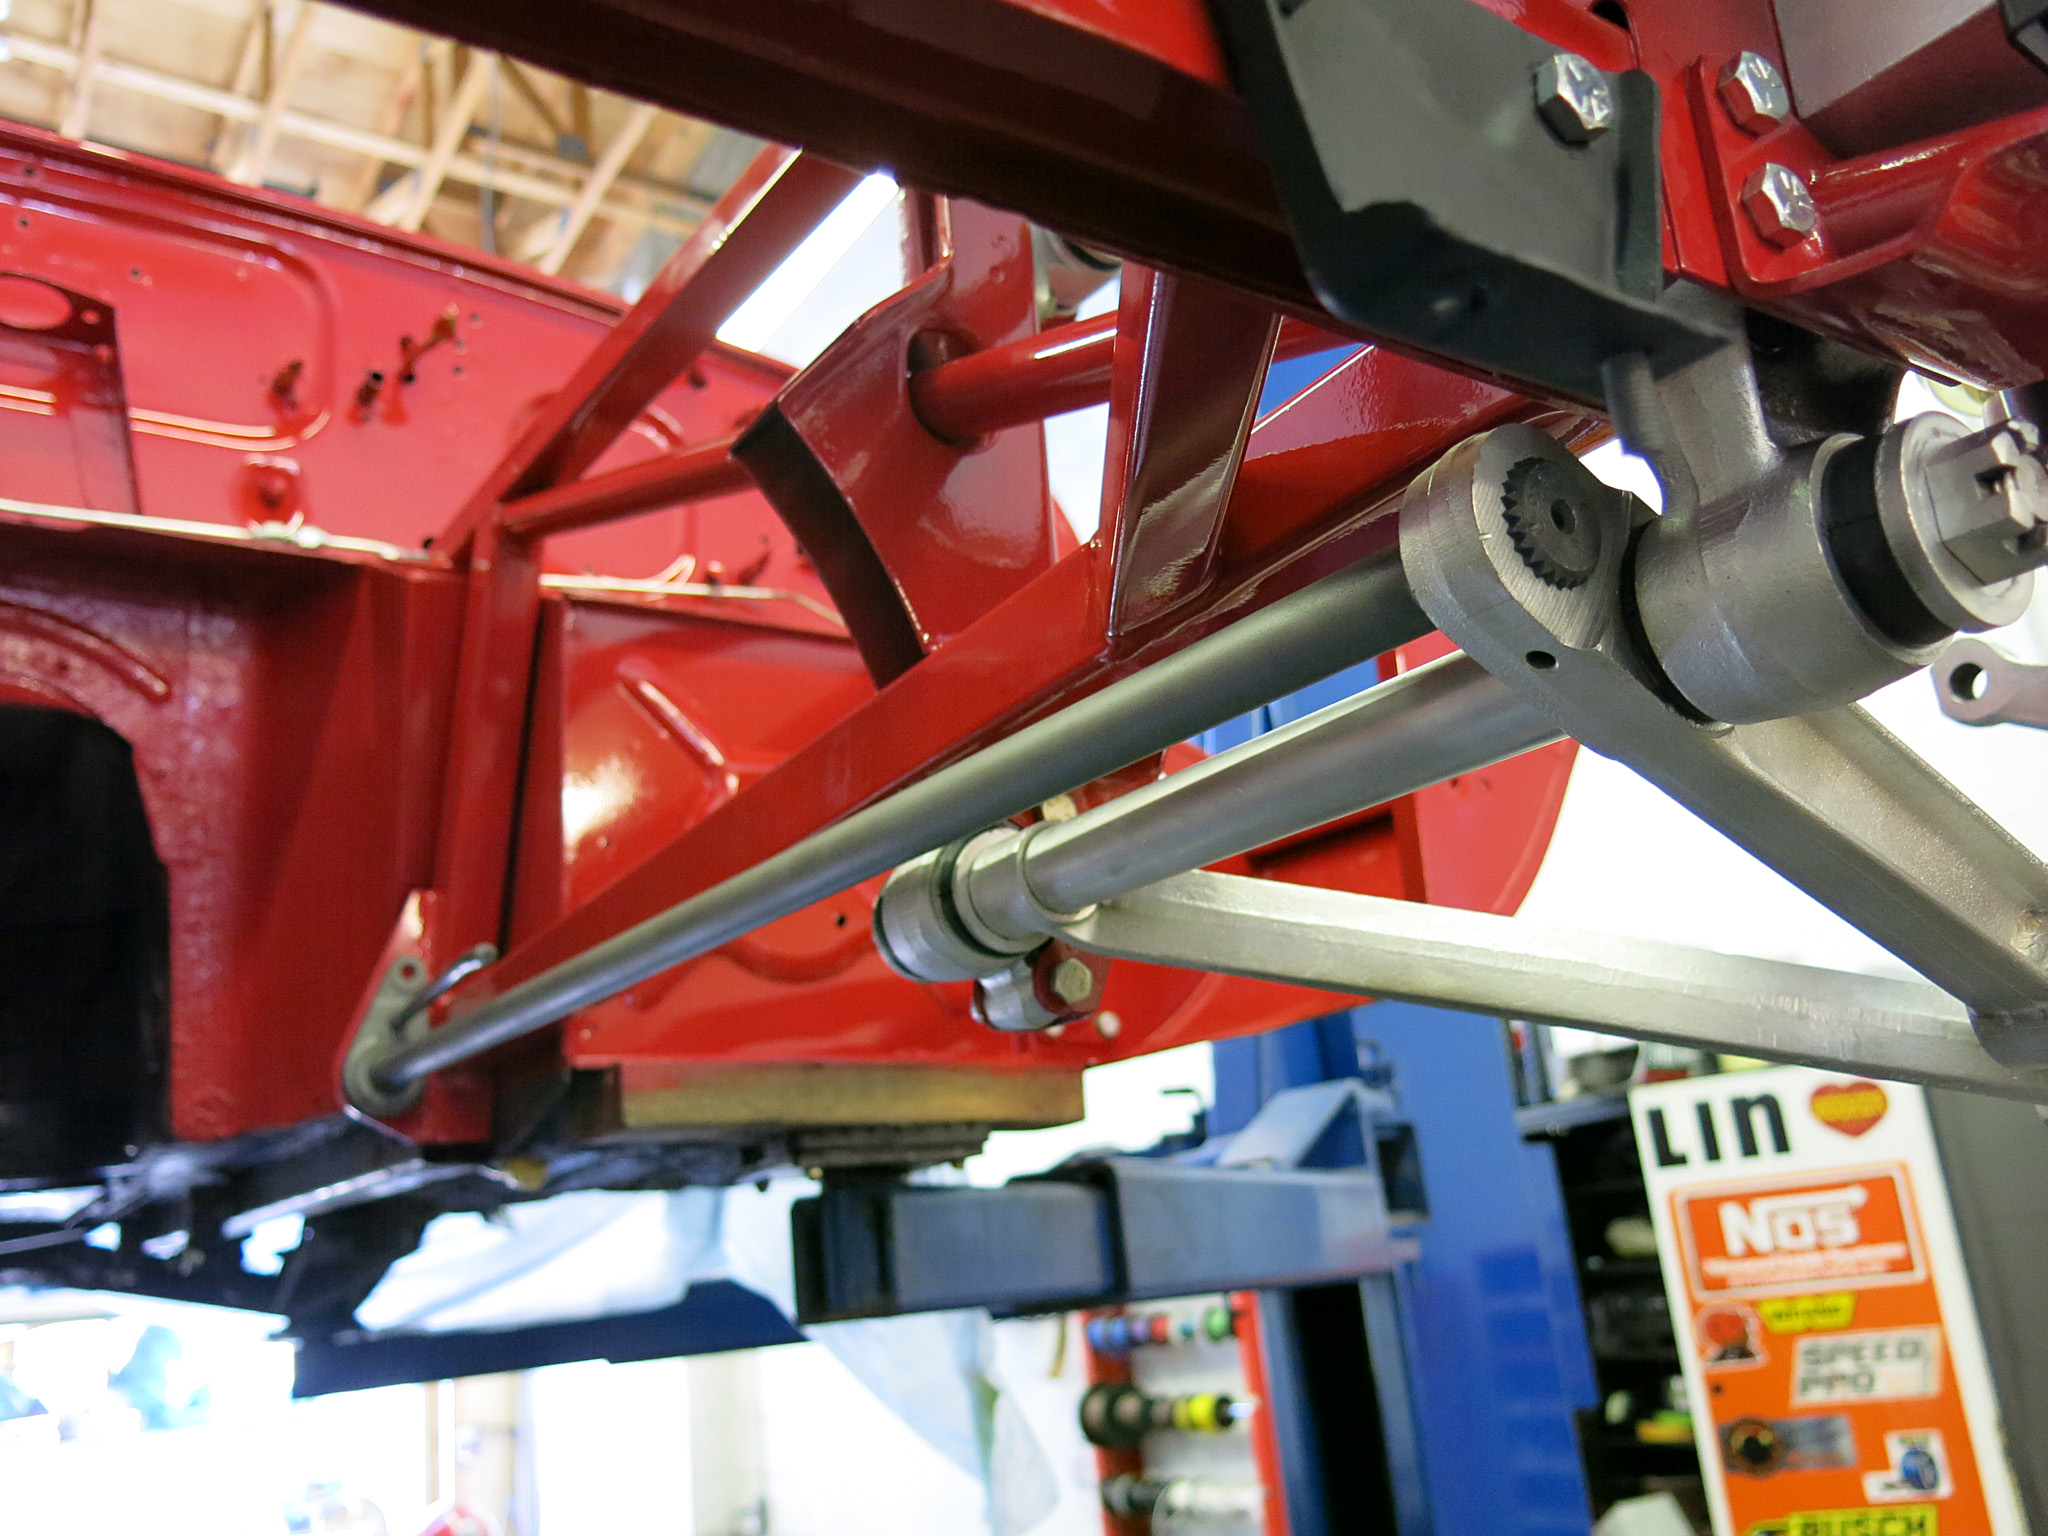 LH Torsion bar is installed to its factory original position.